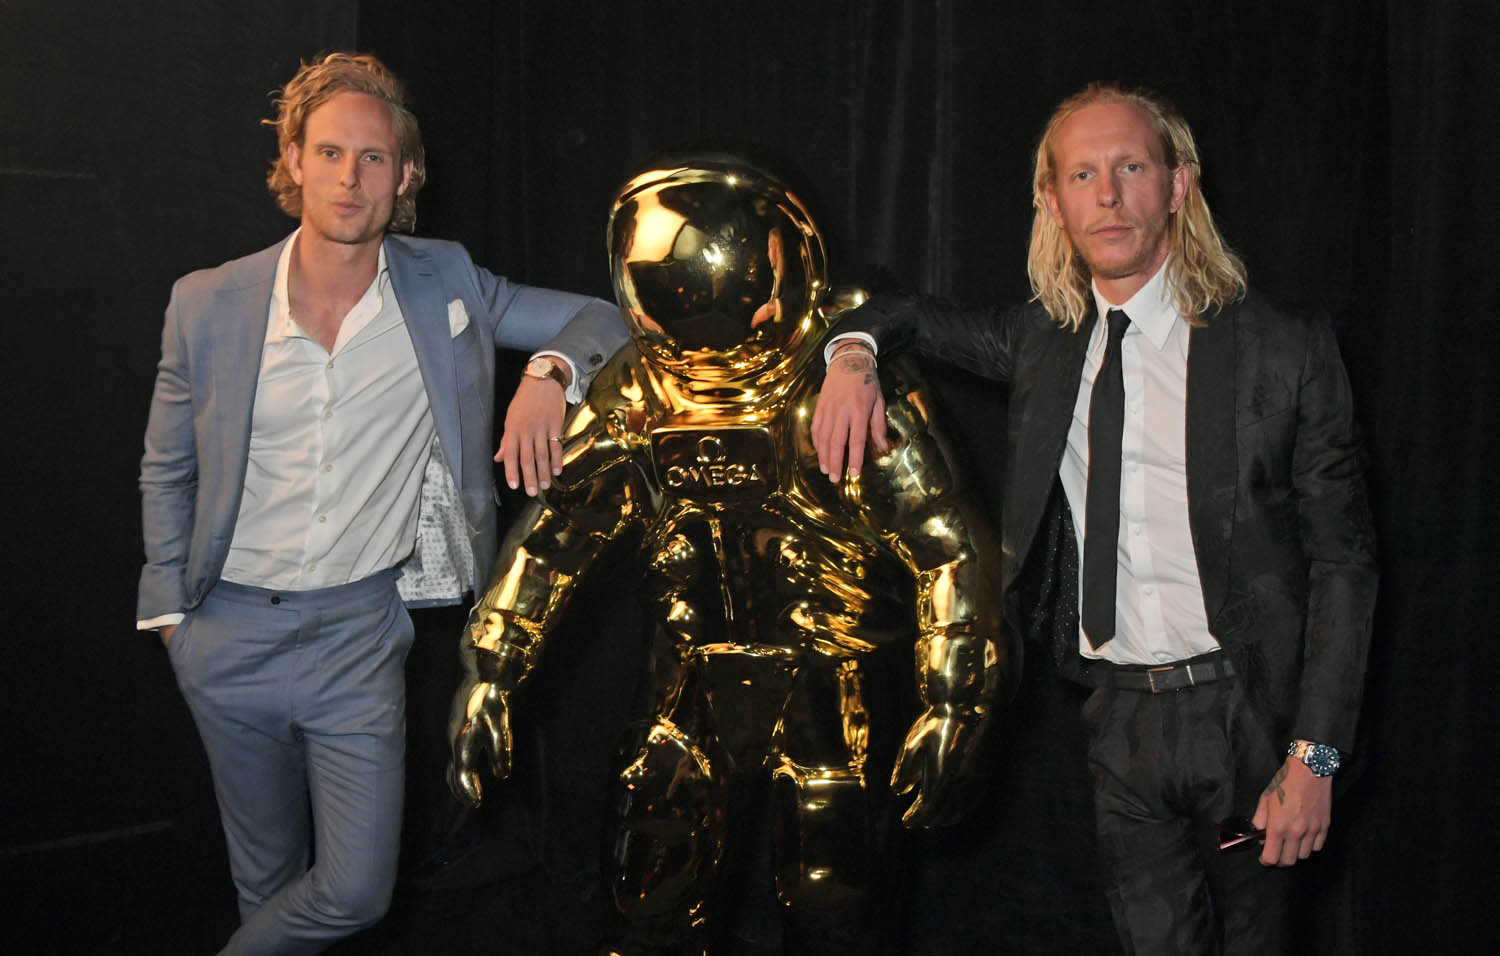 LONDON, ENGLAND - JULY 11: Jack Fox and Laurence Fox attend an OMEGA dinner celebrating the 50th anniversary of the Moon Landing at Television Centre on July 11, 2019 in London, England. (Photo by David M. Benett/Dave Benett/Getty Images for OMEGA)